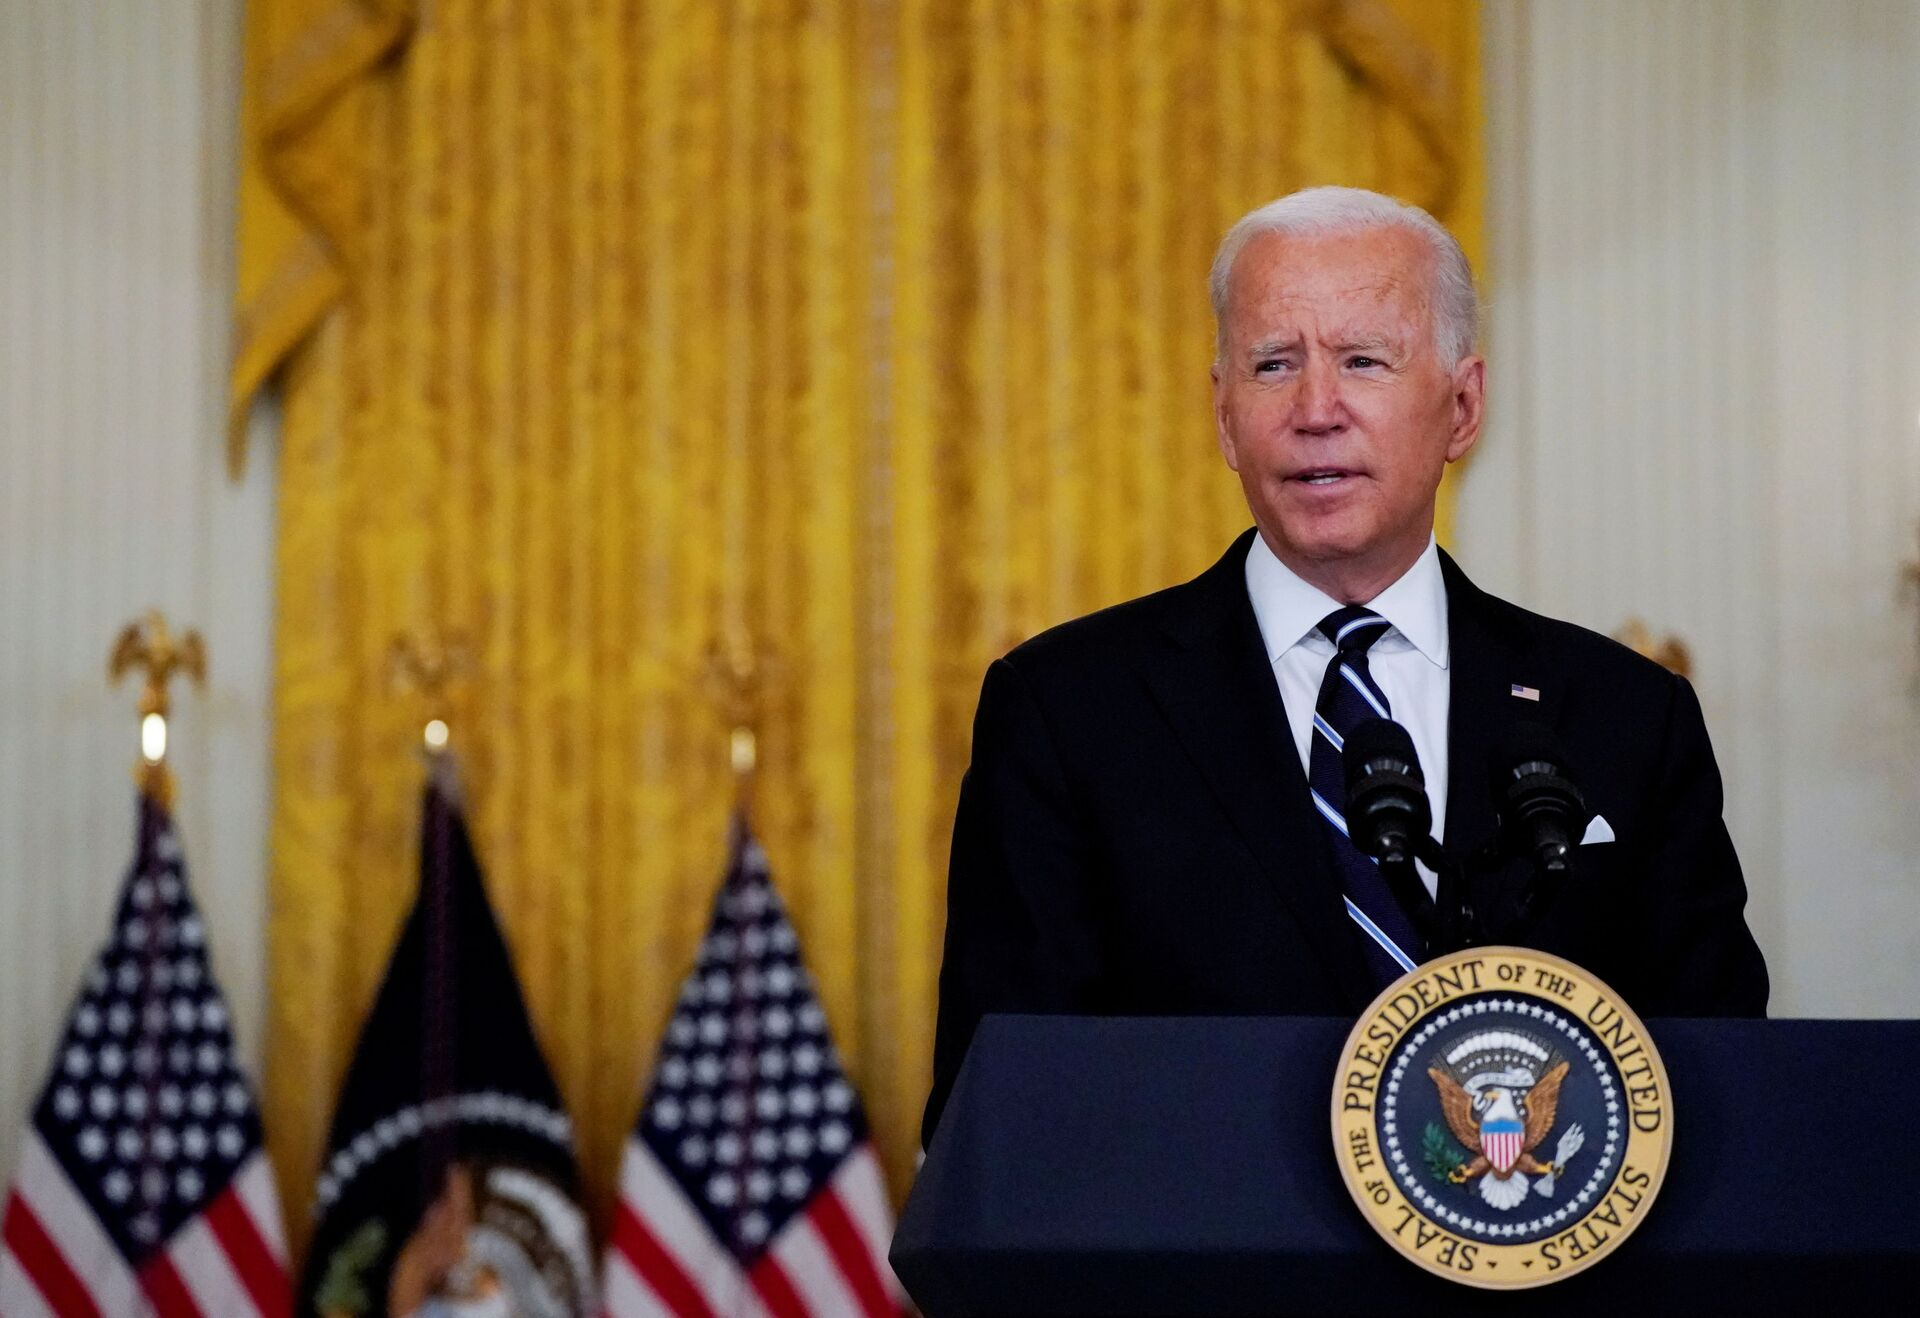 U.S. President Joe Biden delivers remarks on the coronavirus disease (COVID-19) response and  vaccination program during a speech in the East Room at the White House in Washington, U.S., August 18, 2021. - Sputnik International, 1920, 07.09.2021